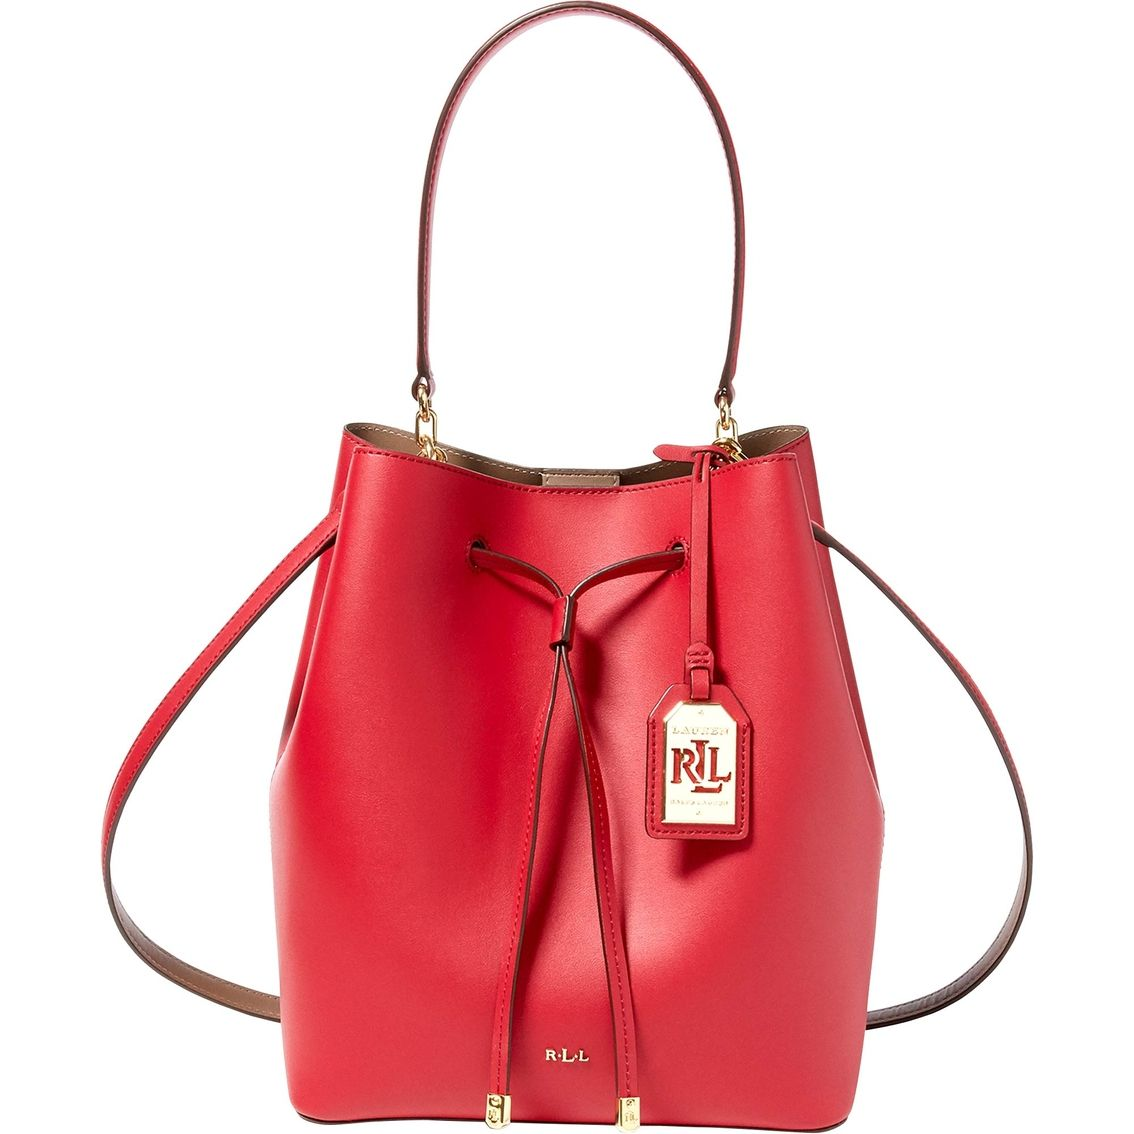 Lauren Ralph Lauren Dryden Debby Drawstring Bag | Contrasting interior and removable straps take this lightweight drawstring bag from basic to chic.